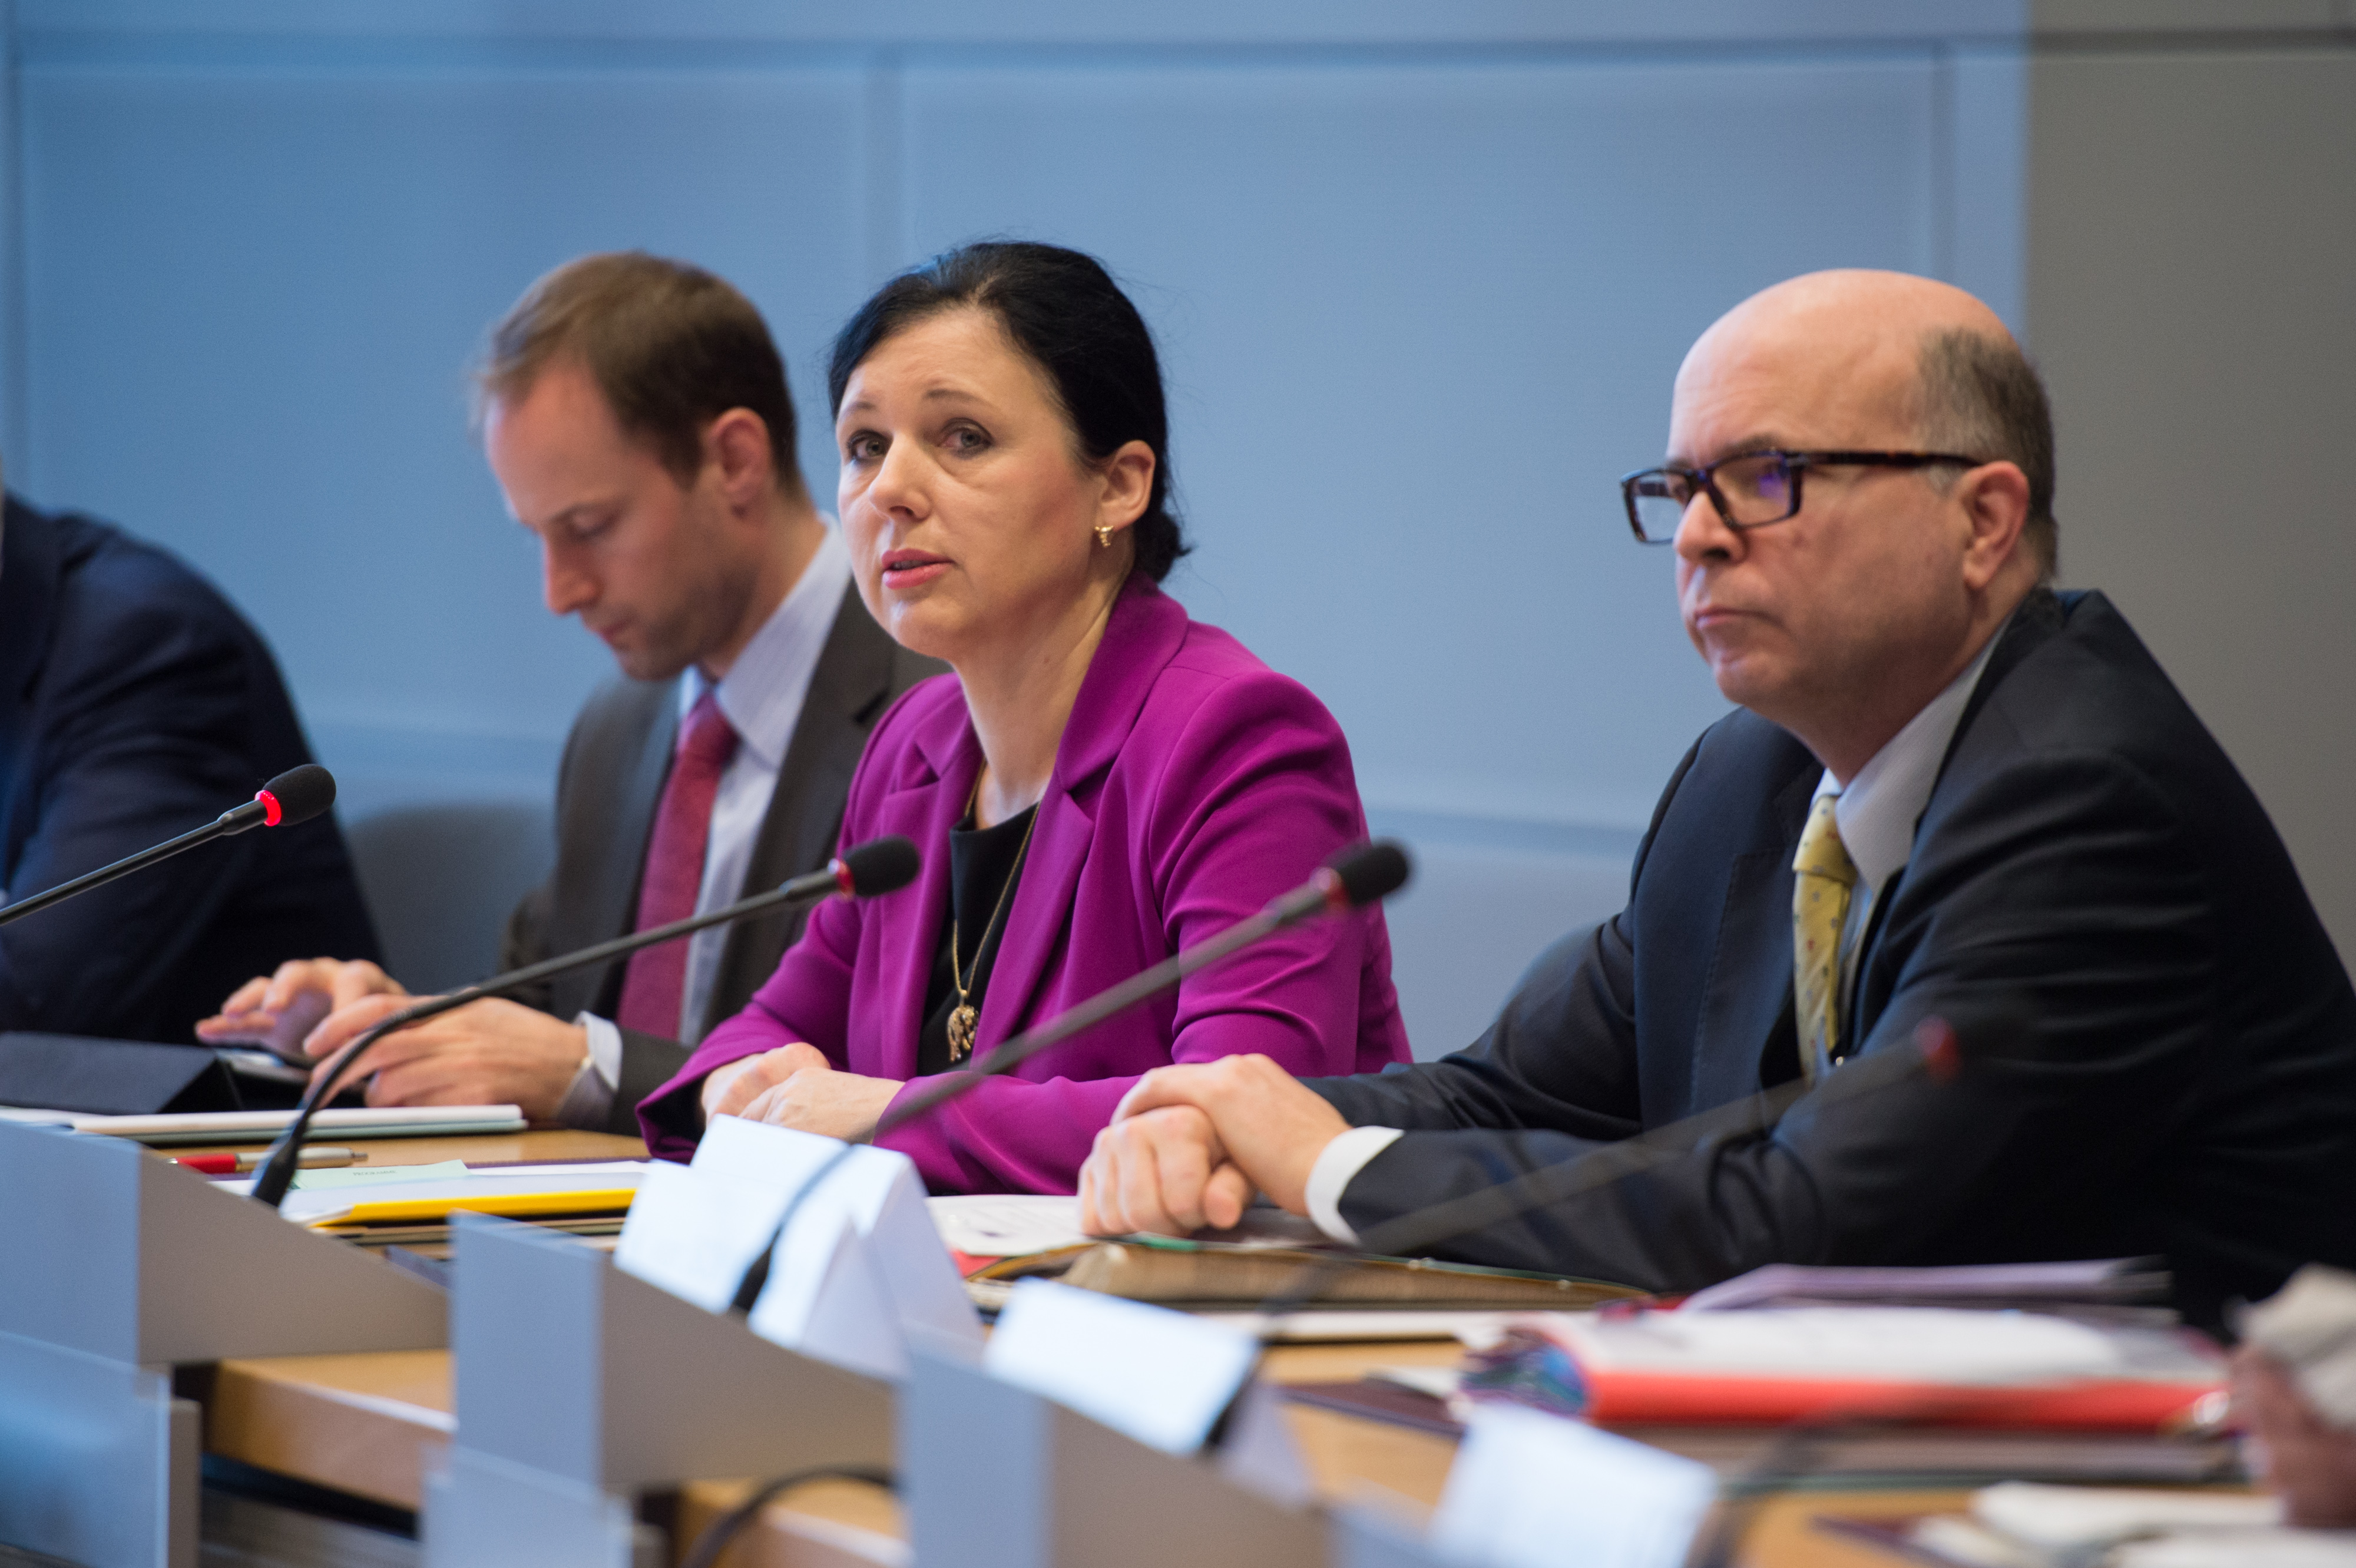 EU Justice Commissioner Vera Jourova and Paul Nemitz, director for fundamental rights at DG Justice